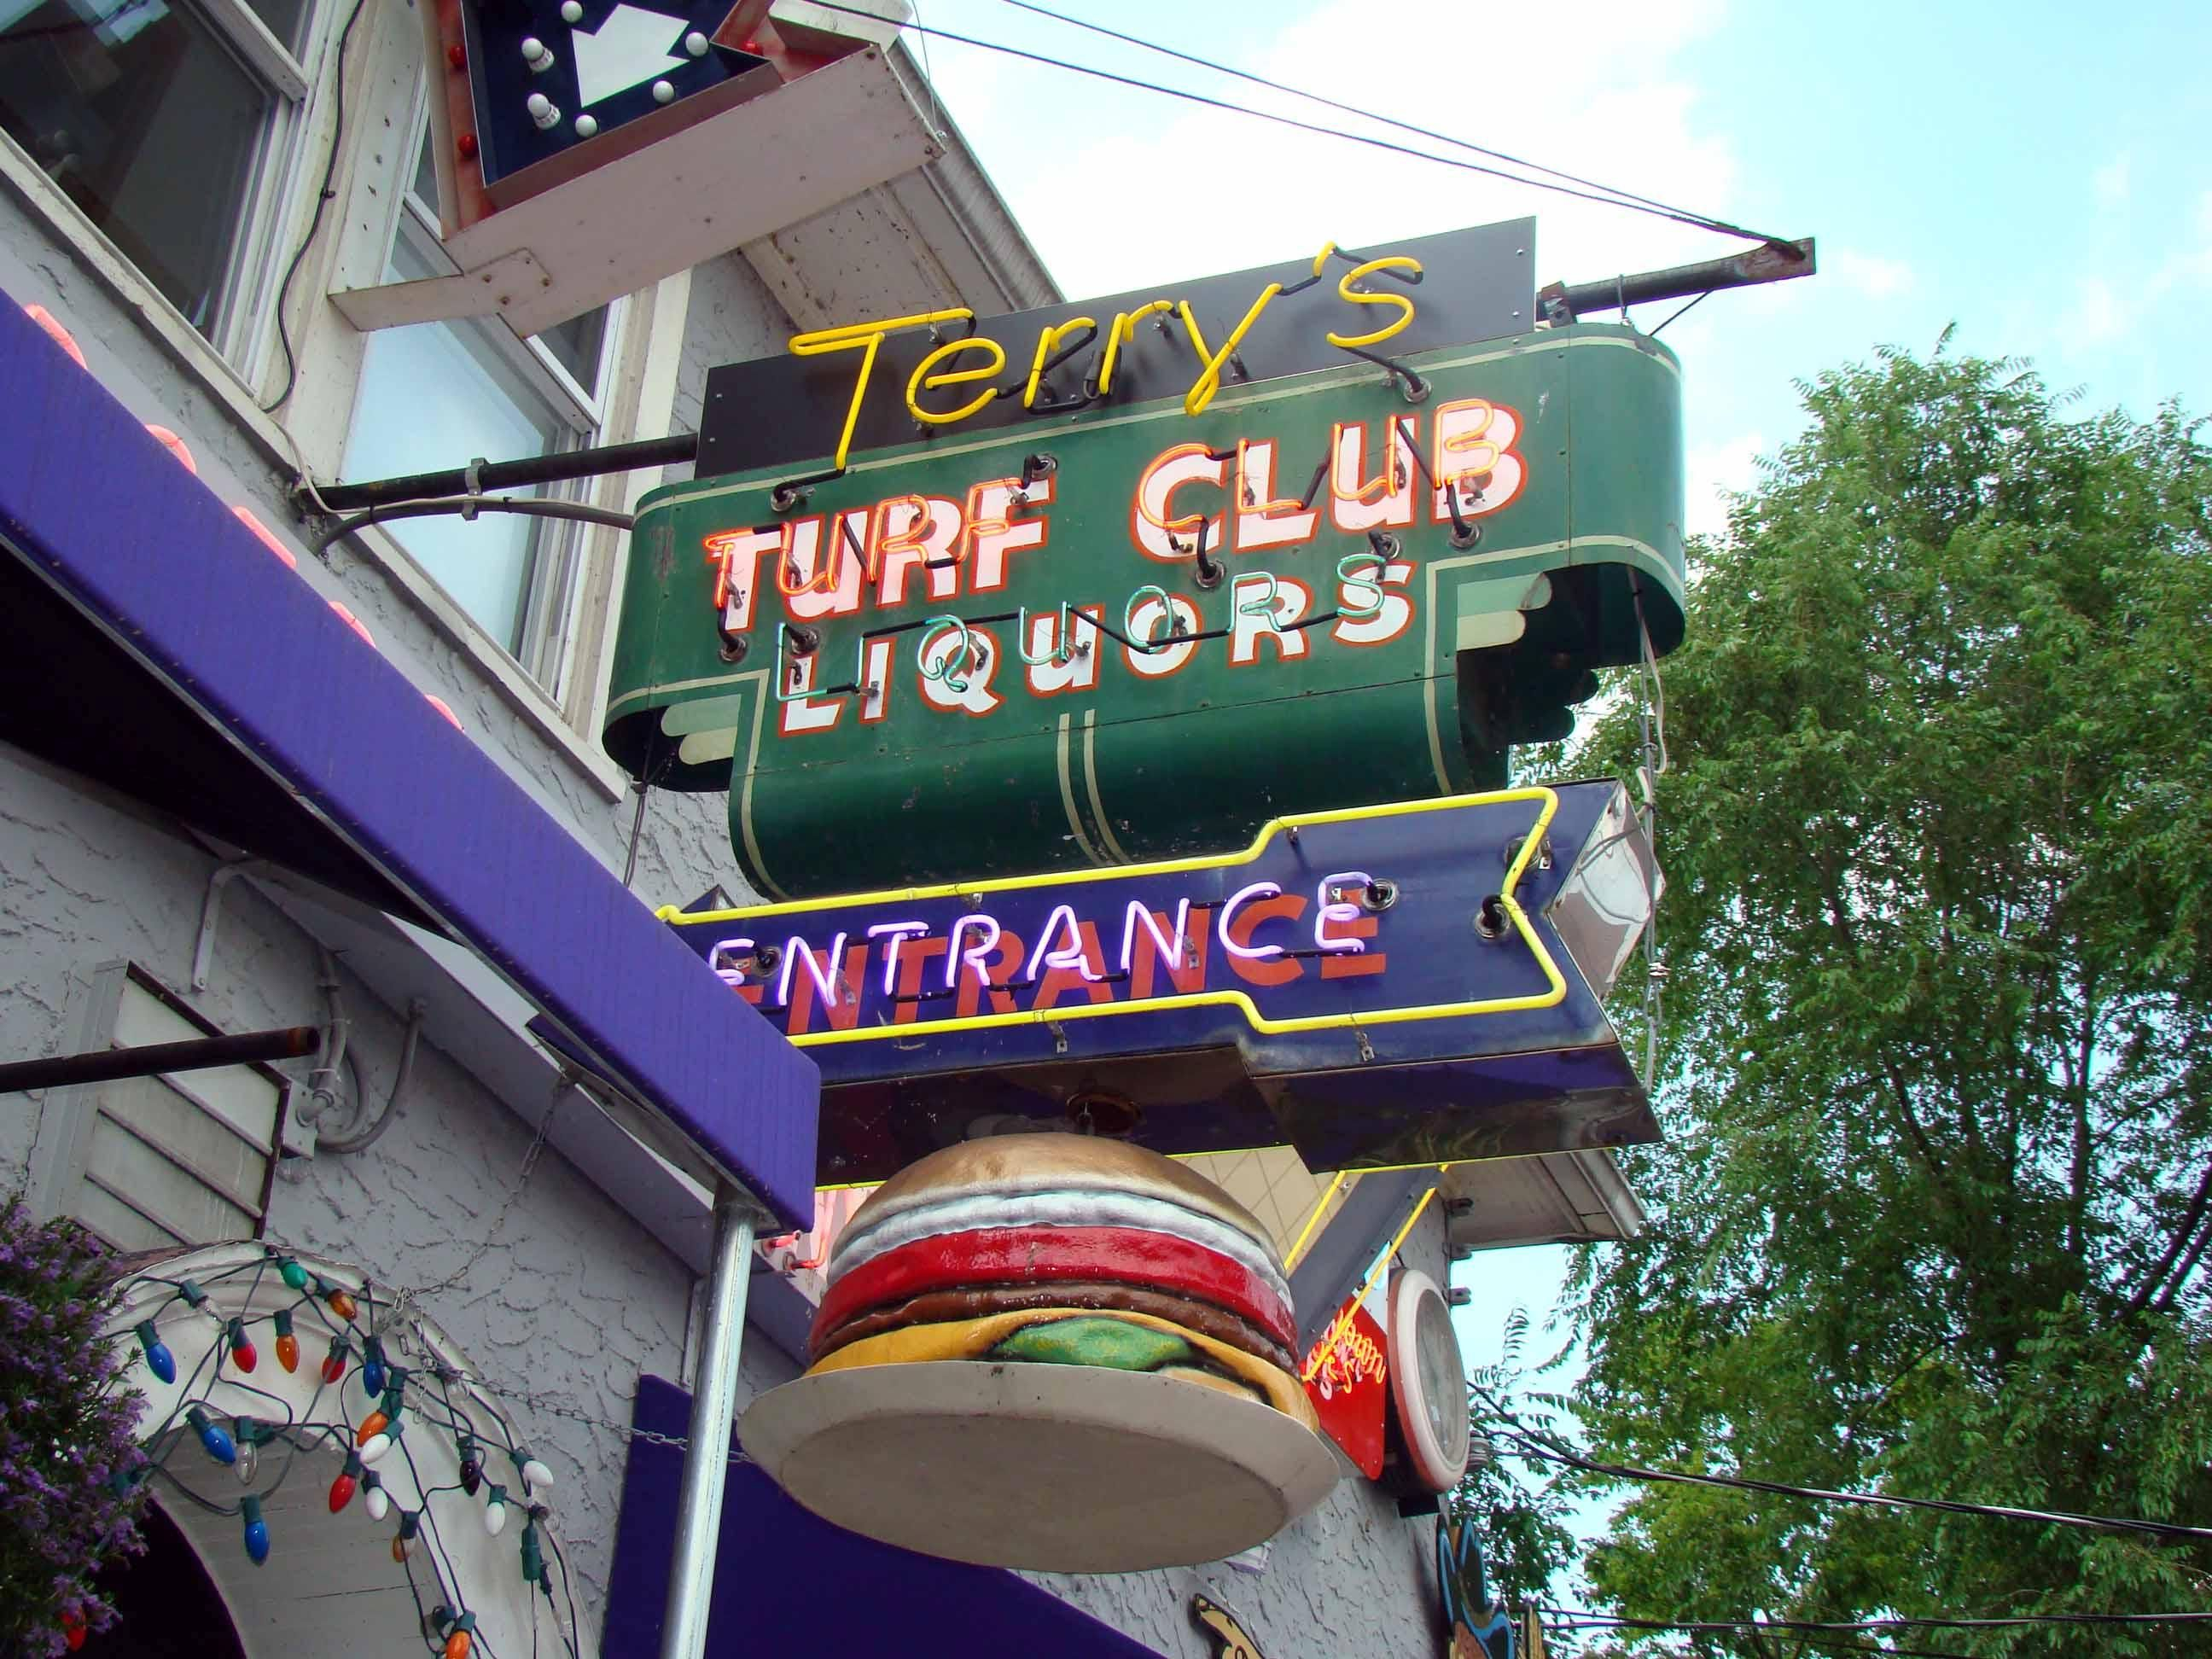 Terry's Turf Club Perhaps the city's best burgers